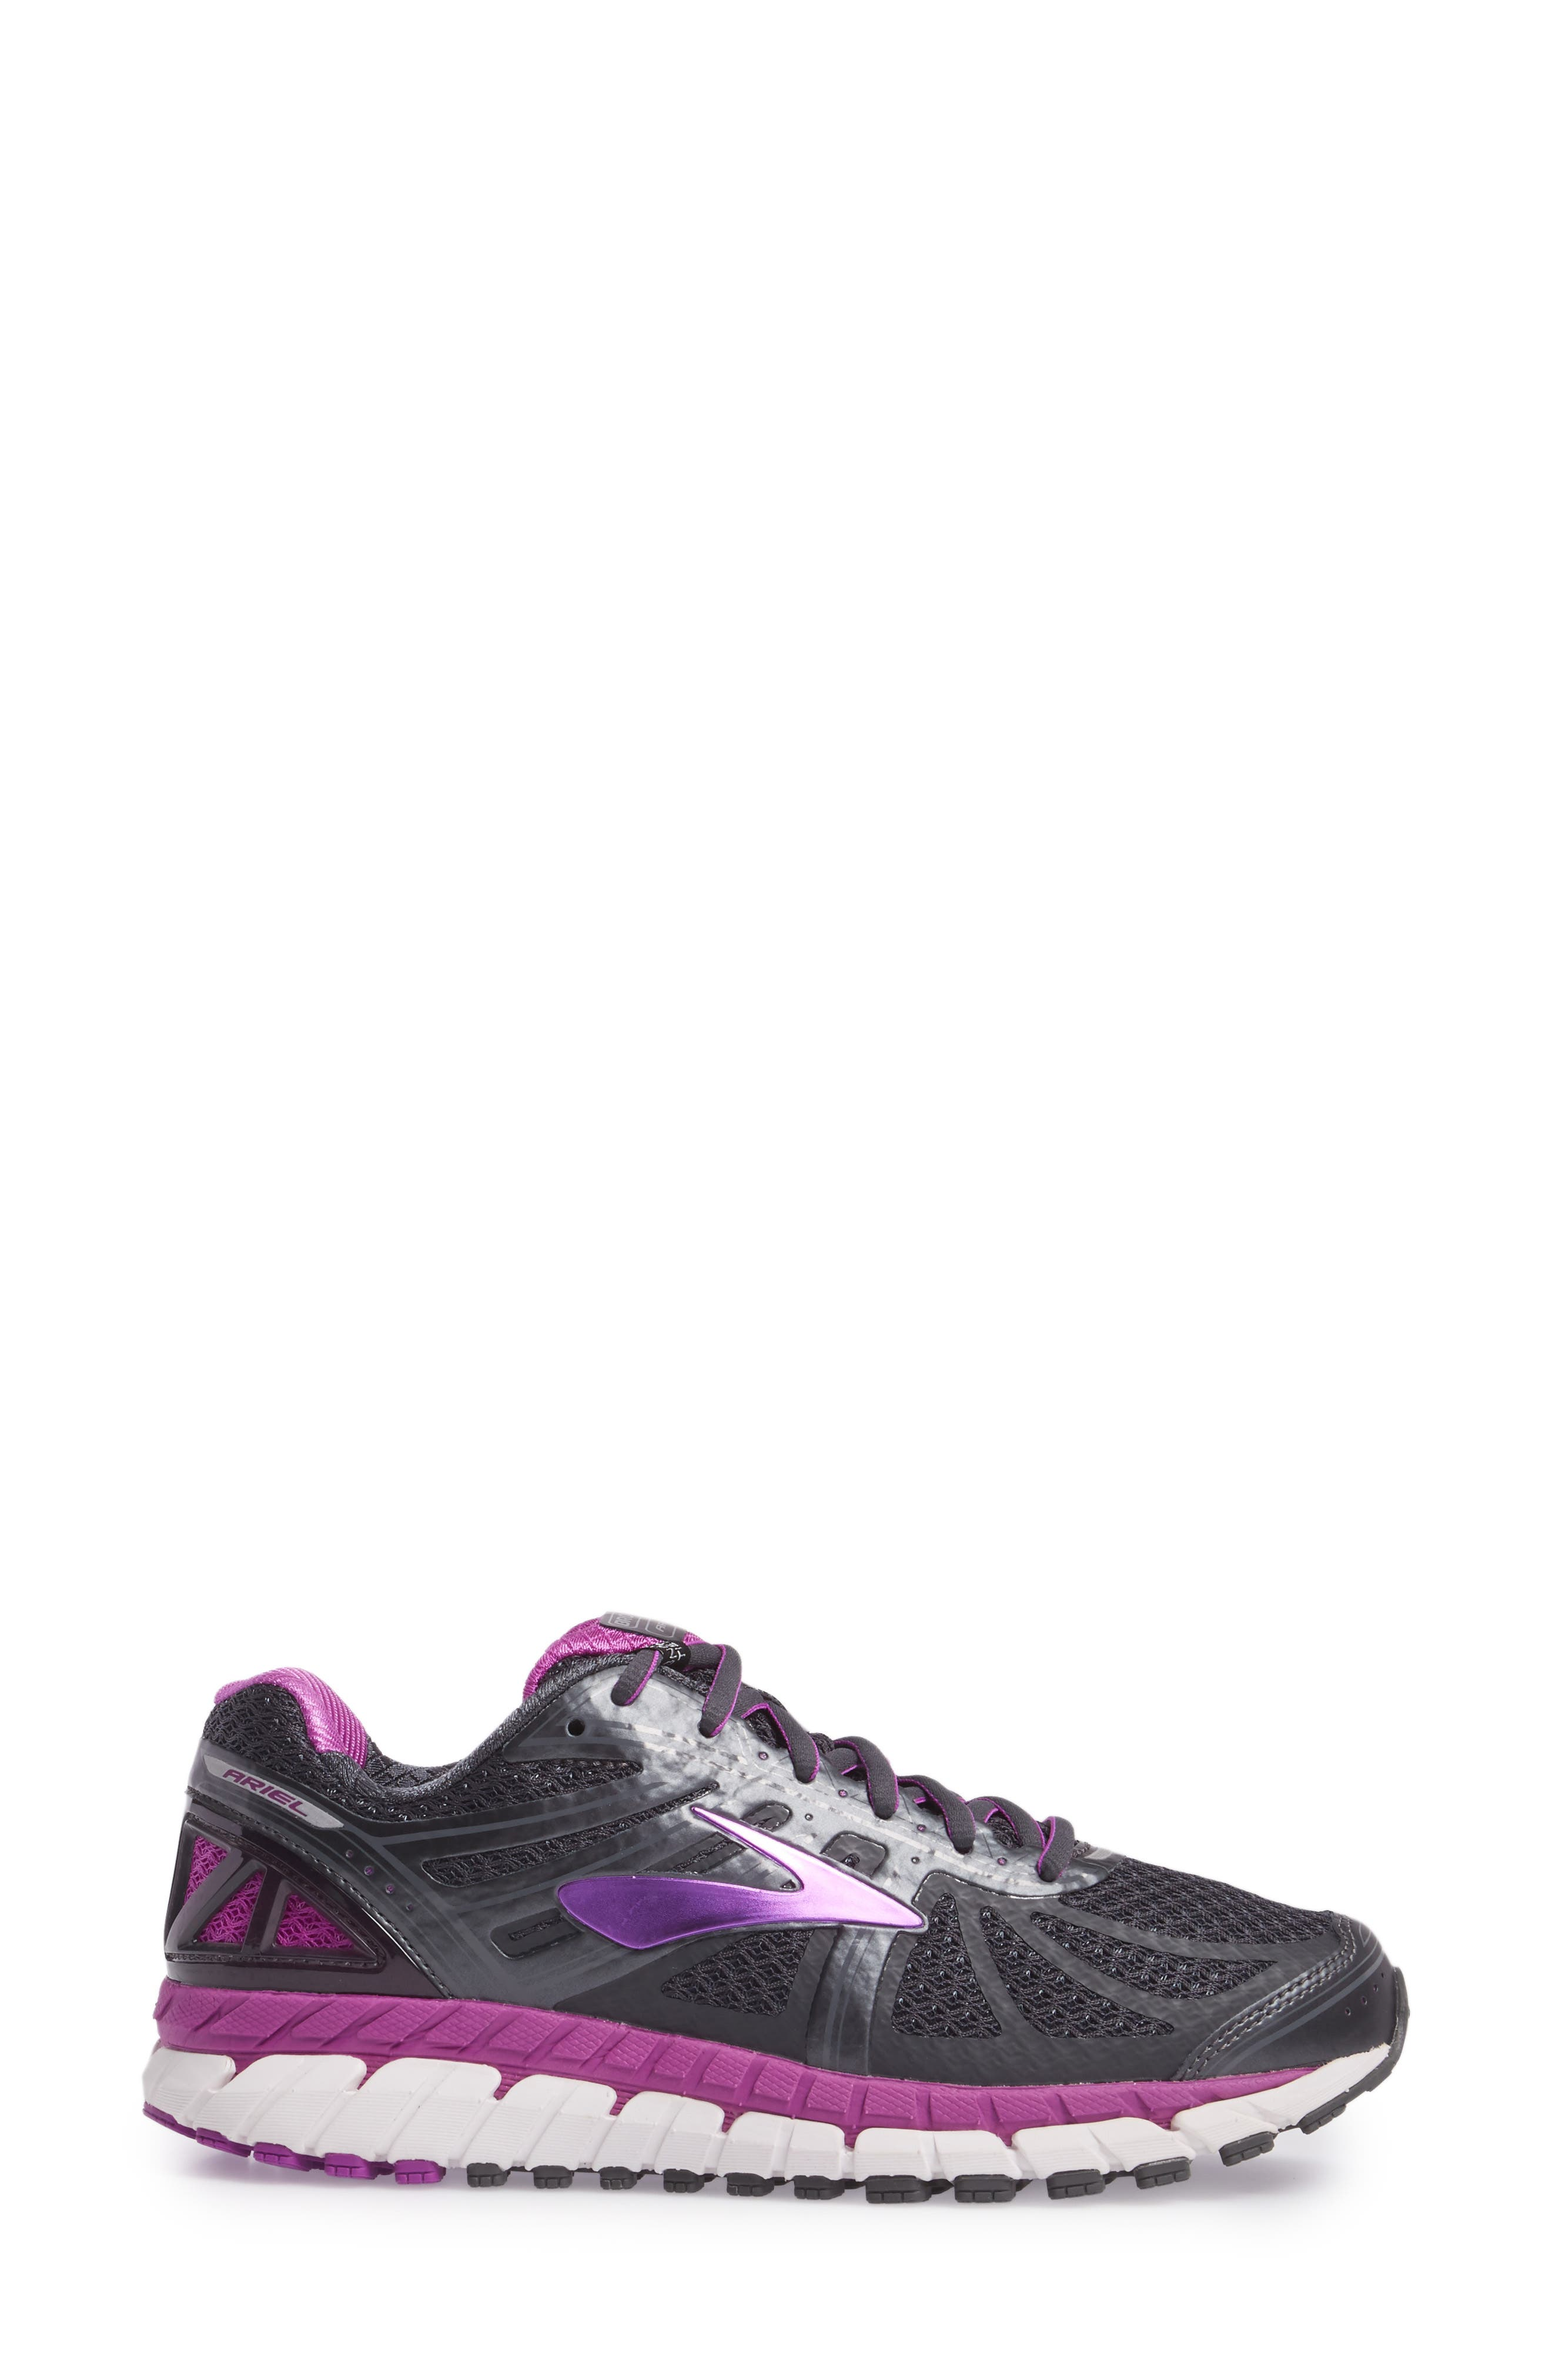 'Ariel 16' Running Shoe,                             Alternate thumbnail 3, color,                             Anthracite/ Purple/ Grey